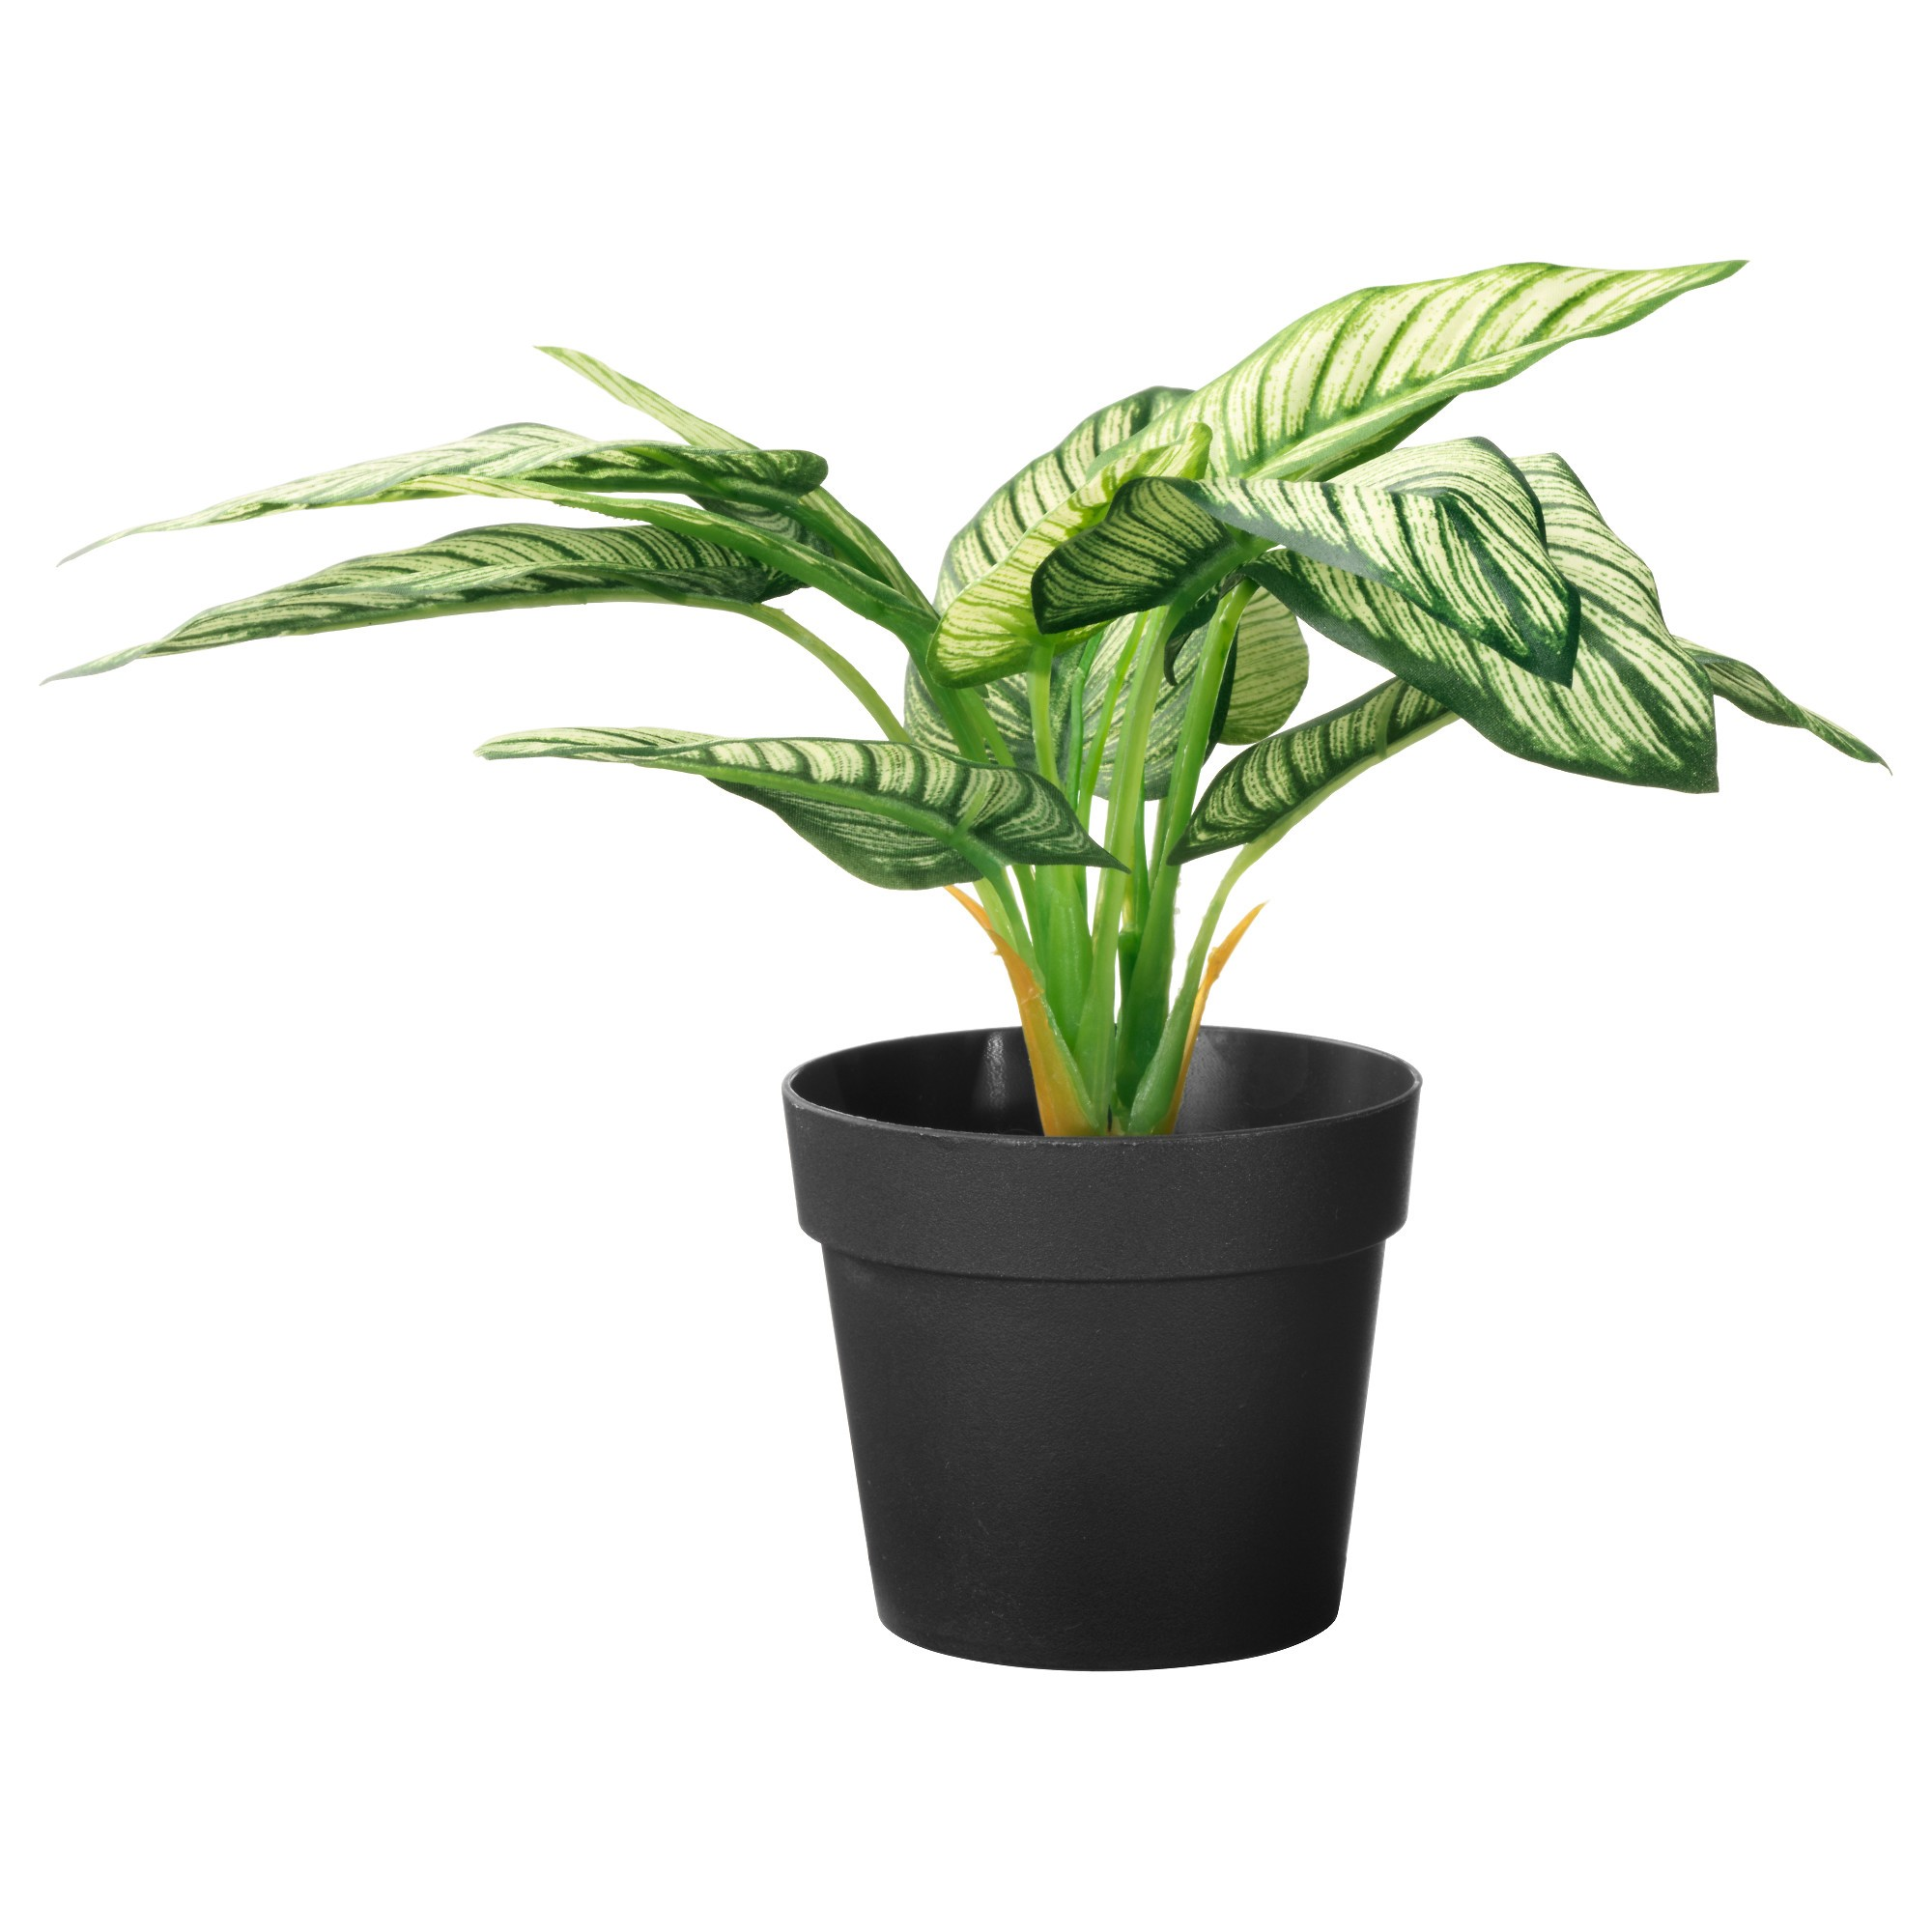 SMI National_Green Potted.jpg